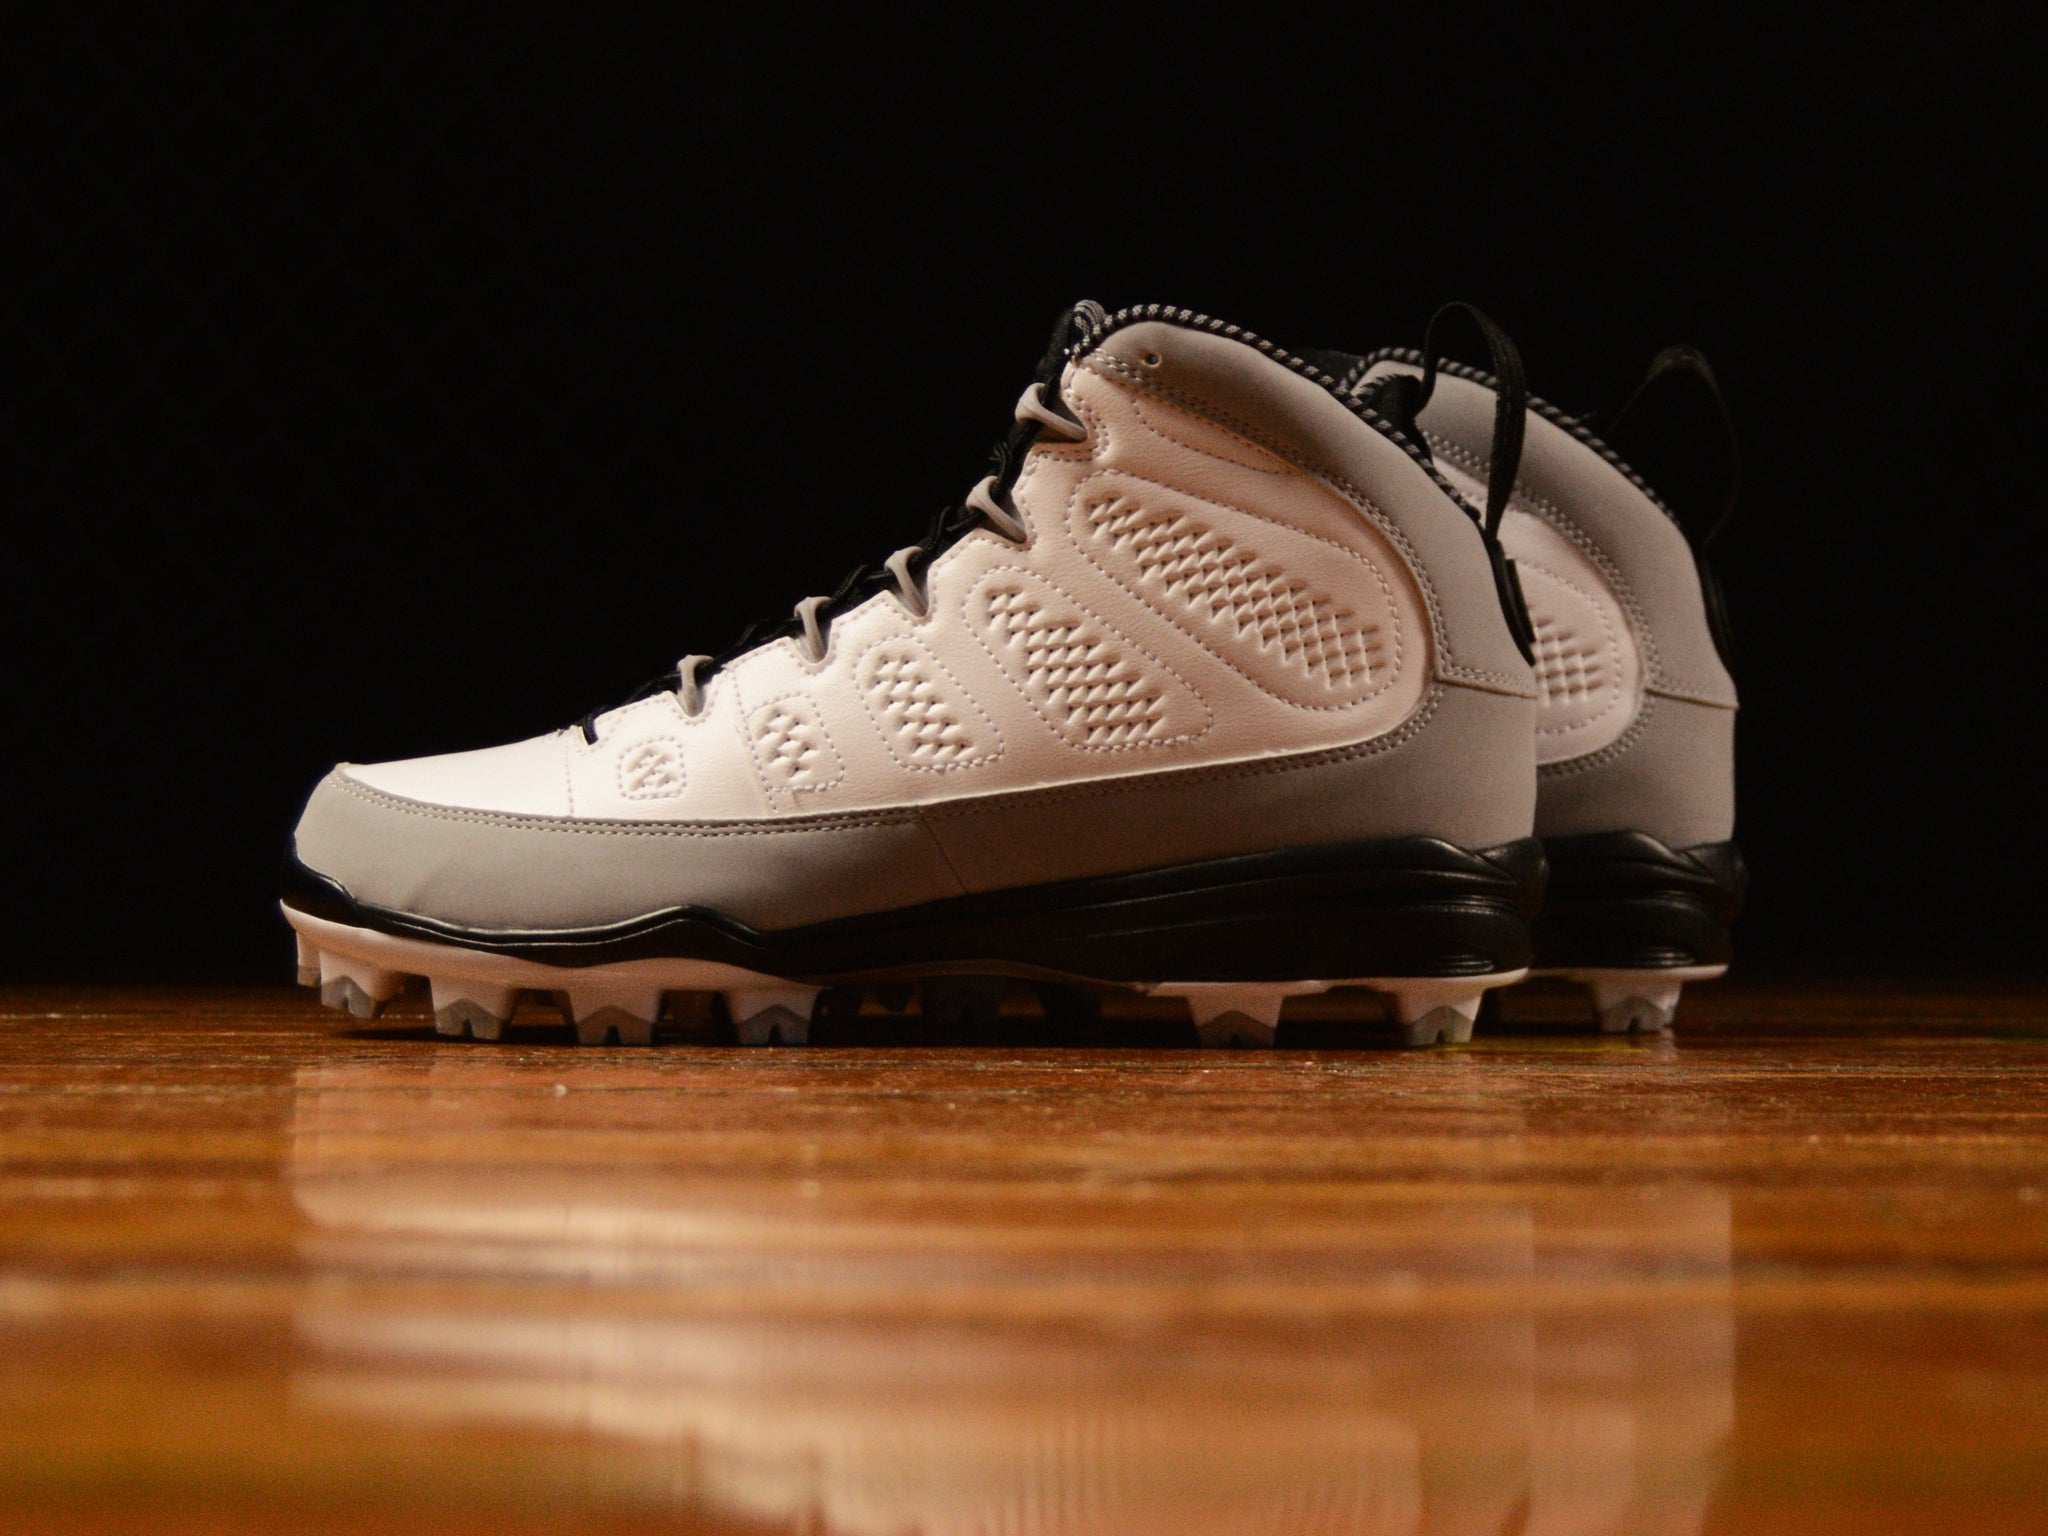 super popular 3e258 b6691 Men's Air Jordan 9 Retro MCS Cleat 'RE2PECT' [AA1264-103]